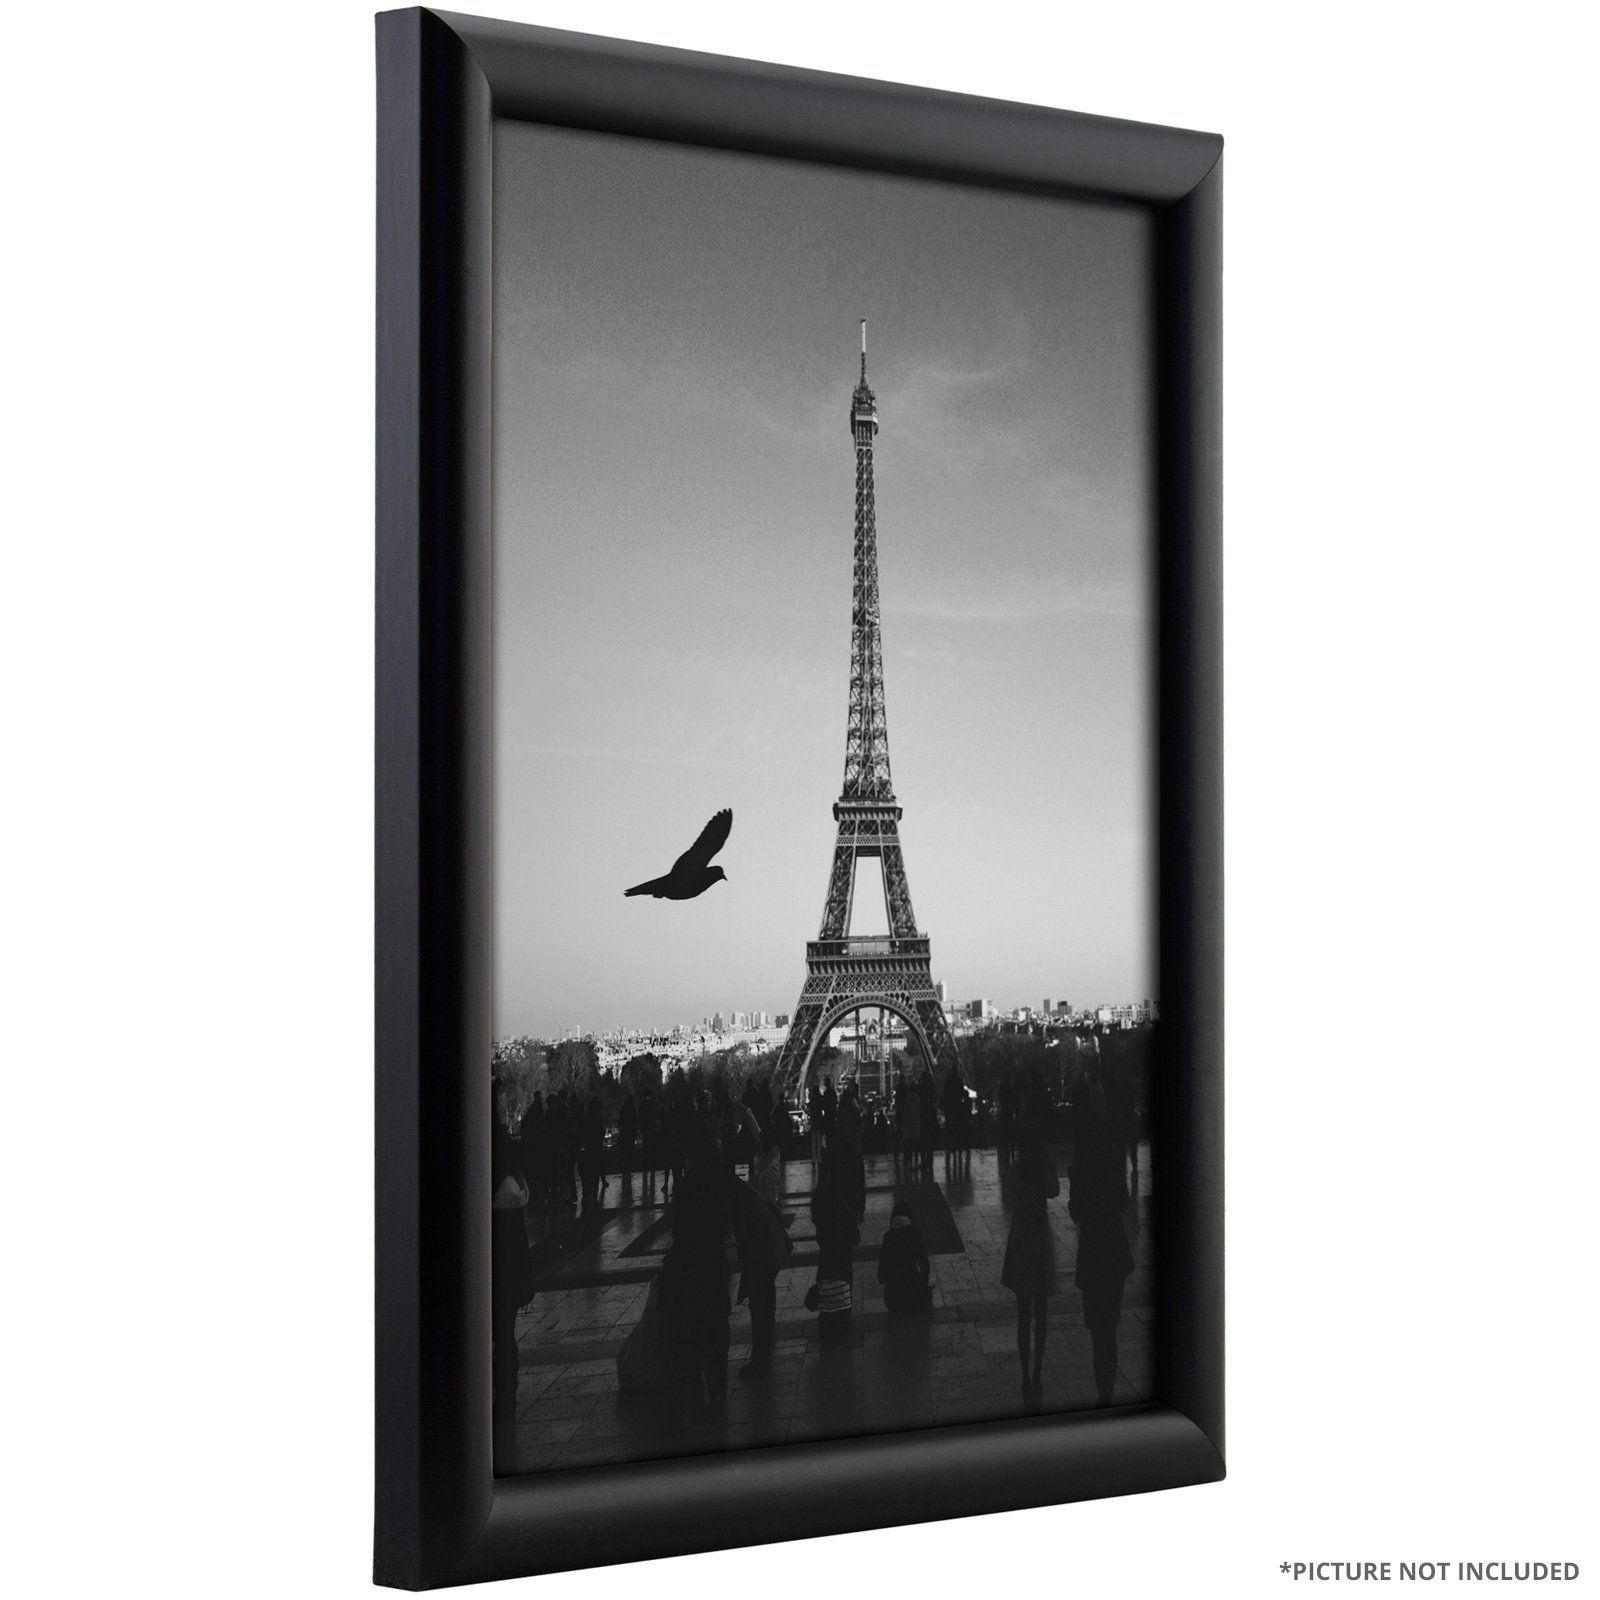 Amazon 076 wide smooth picture frame size 20 x 24 amazon 076 wide smooth picture frame size 20 x 24 jeuxipadfo Images